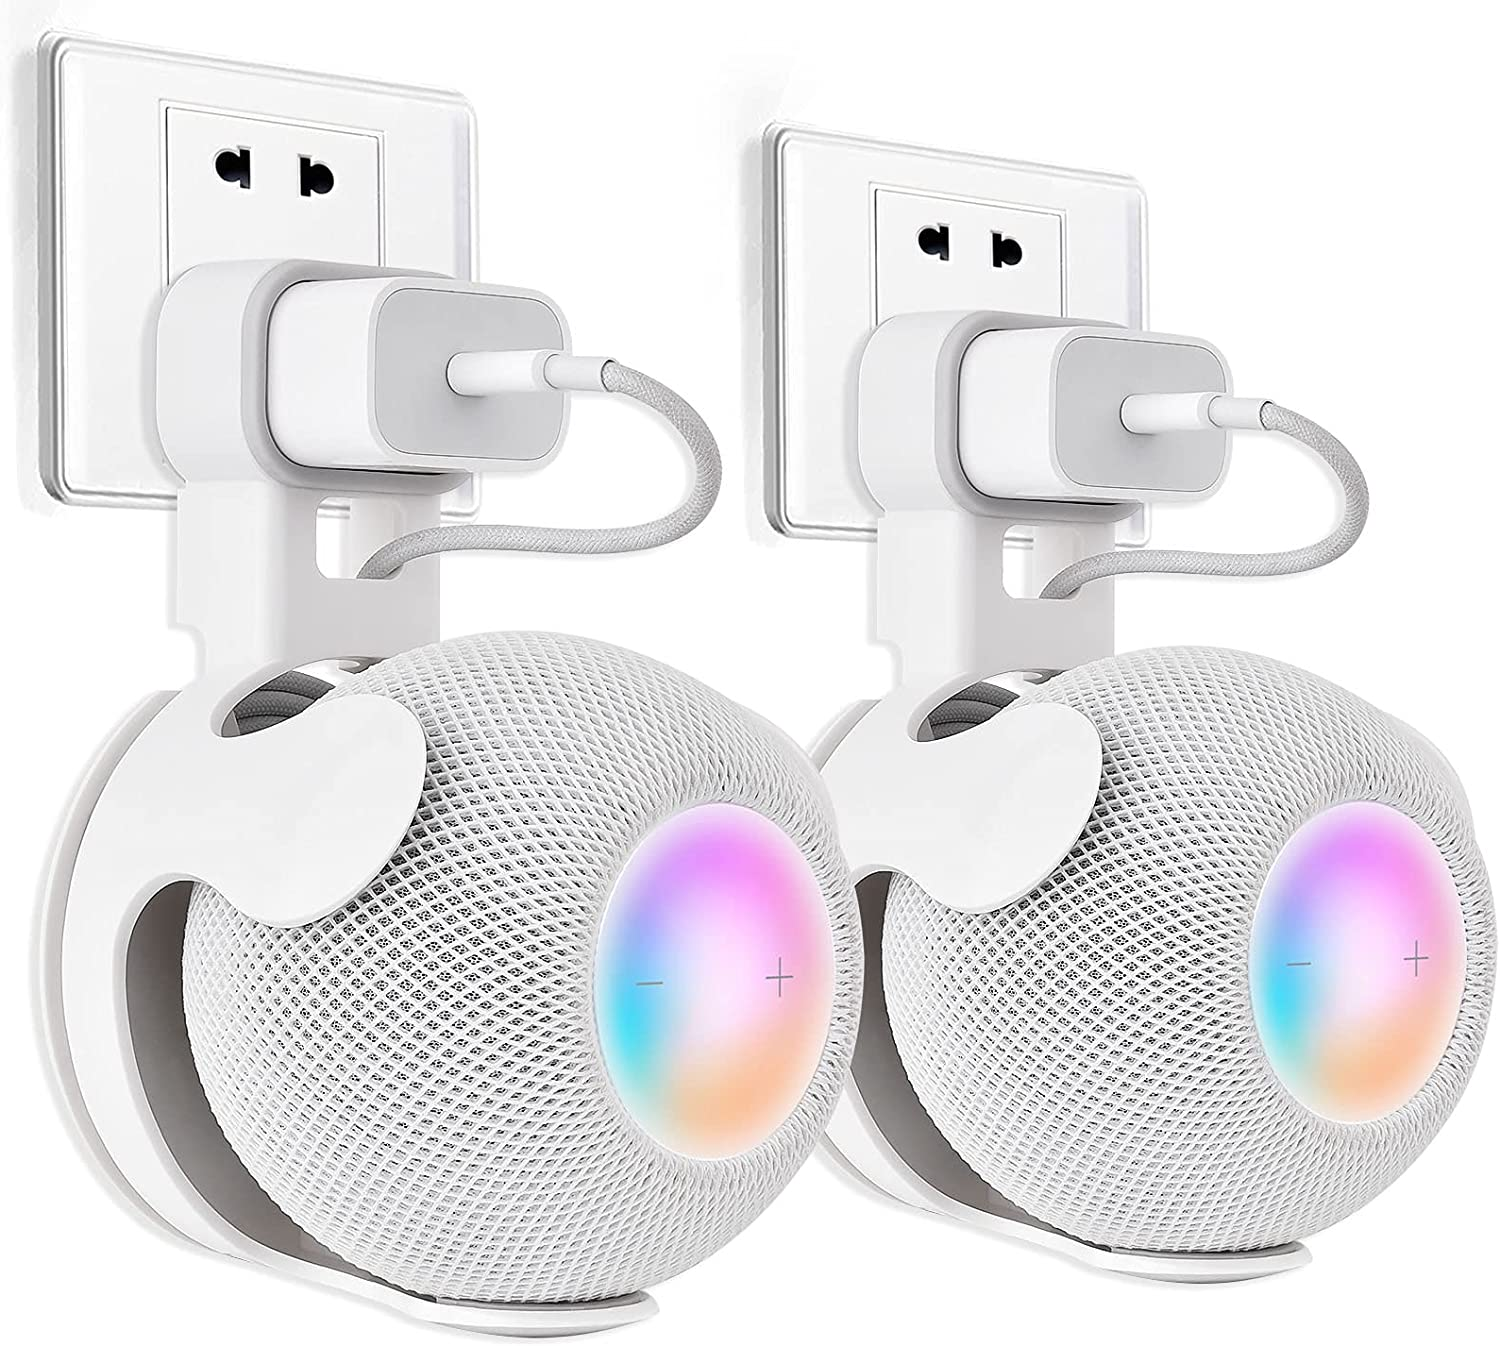 V-MORO HomePod Mini Wall Mount Holder, Outlet Mount Stand Hidden Cable Management for Apple HomePod Mini Smart Speaker Shelf Without Messy Wires Excellent Space Saving Punch-Free 2-Pack White